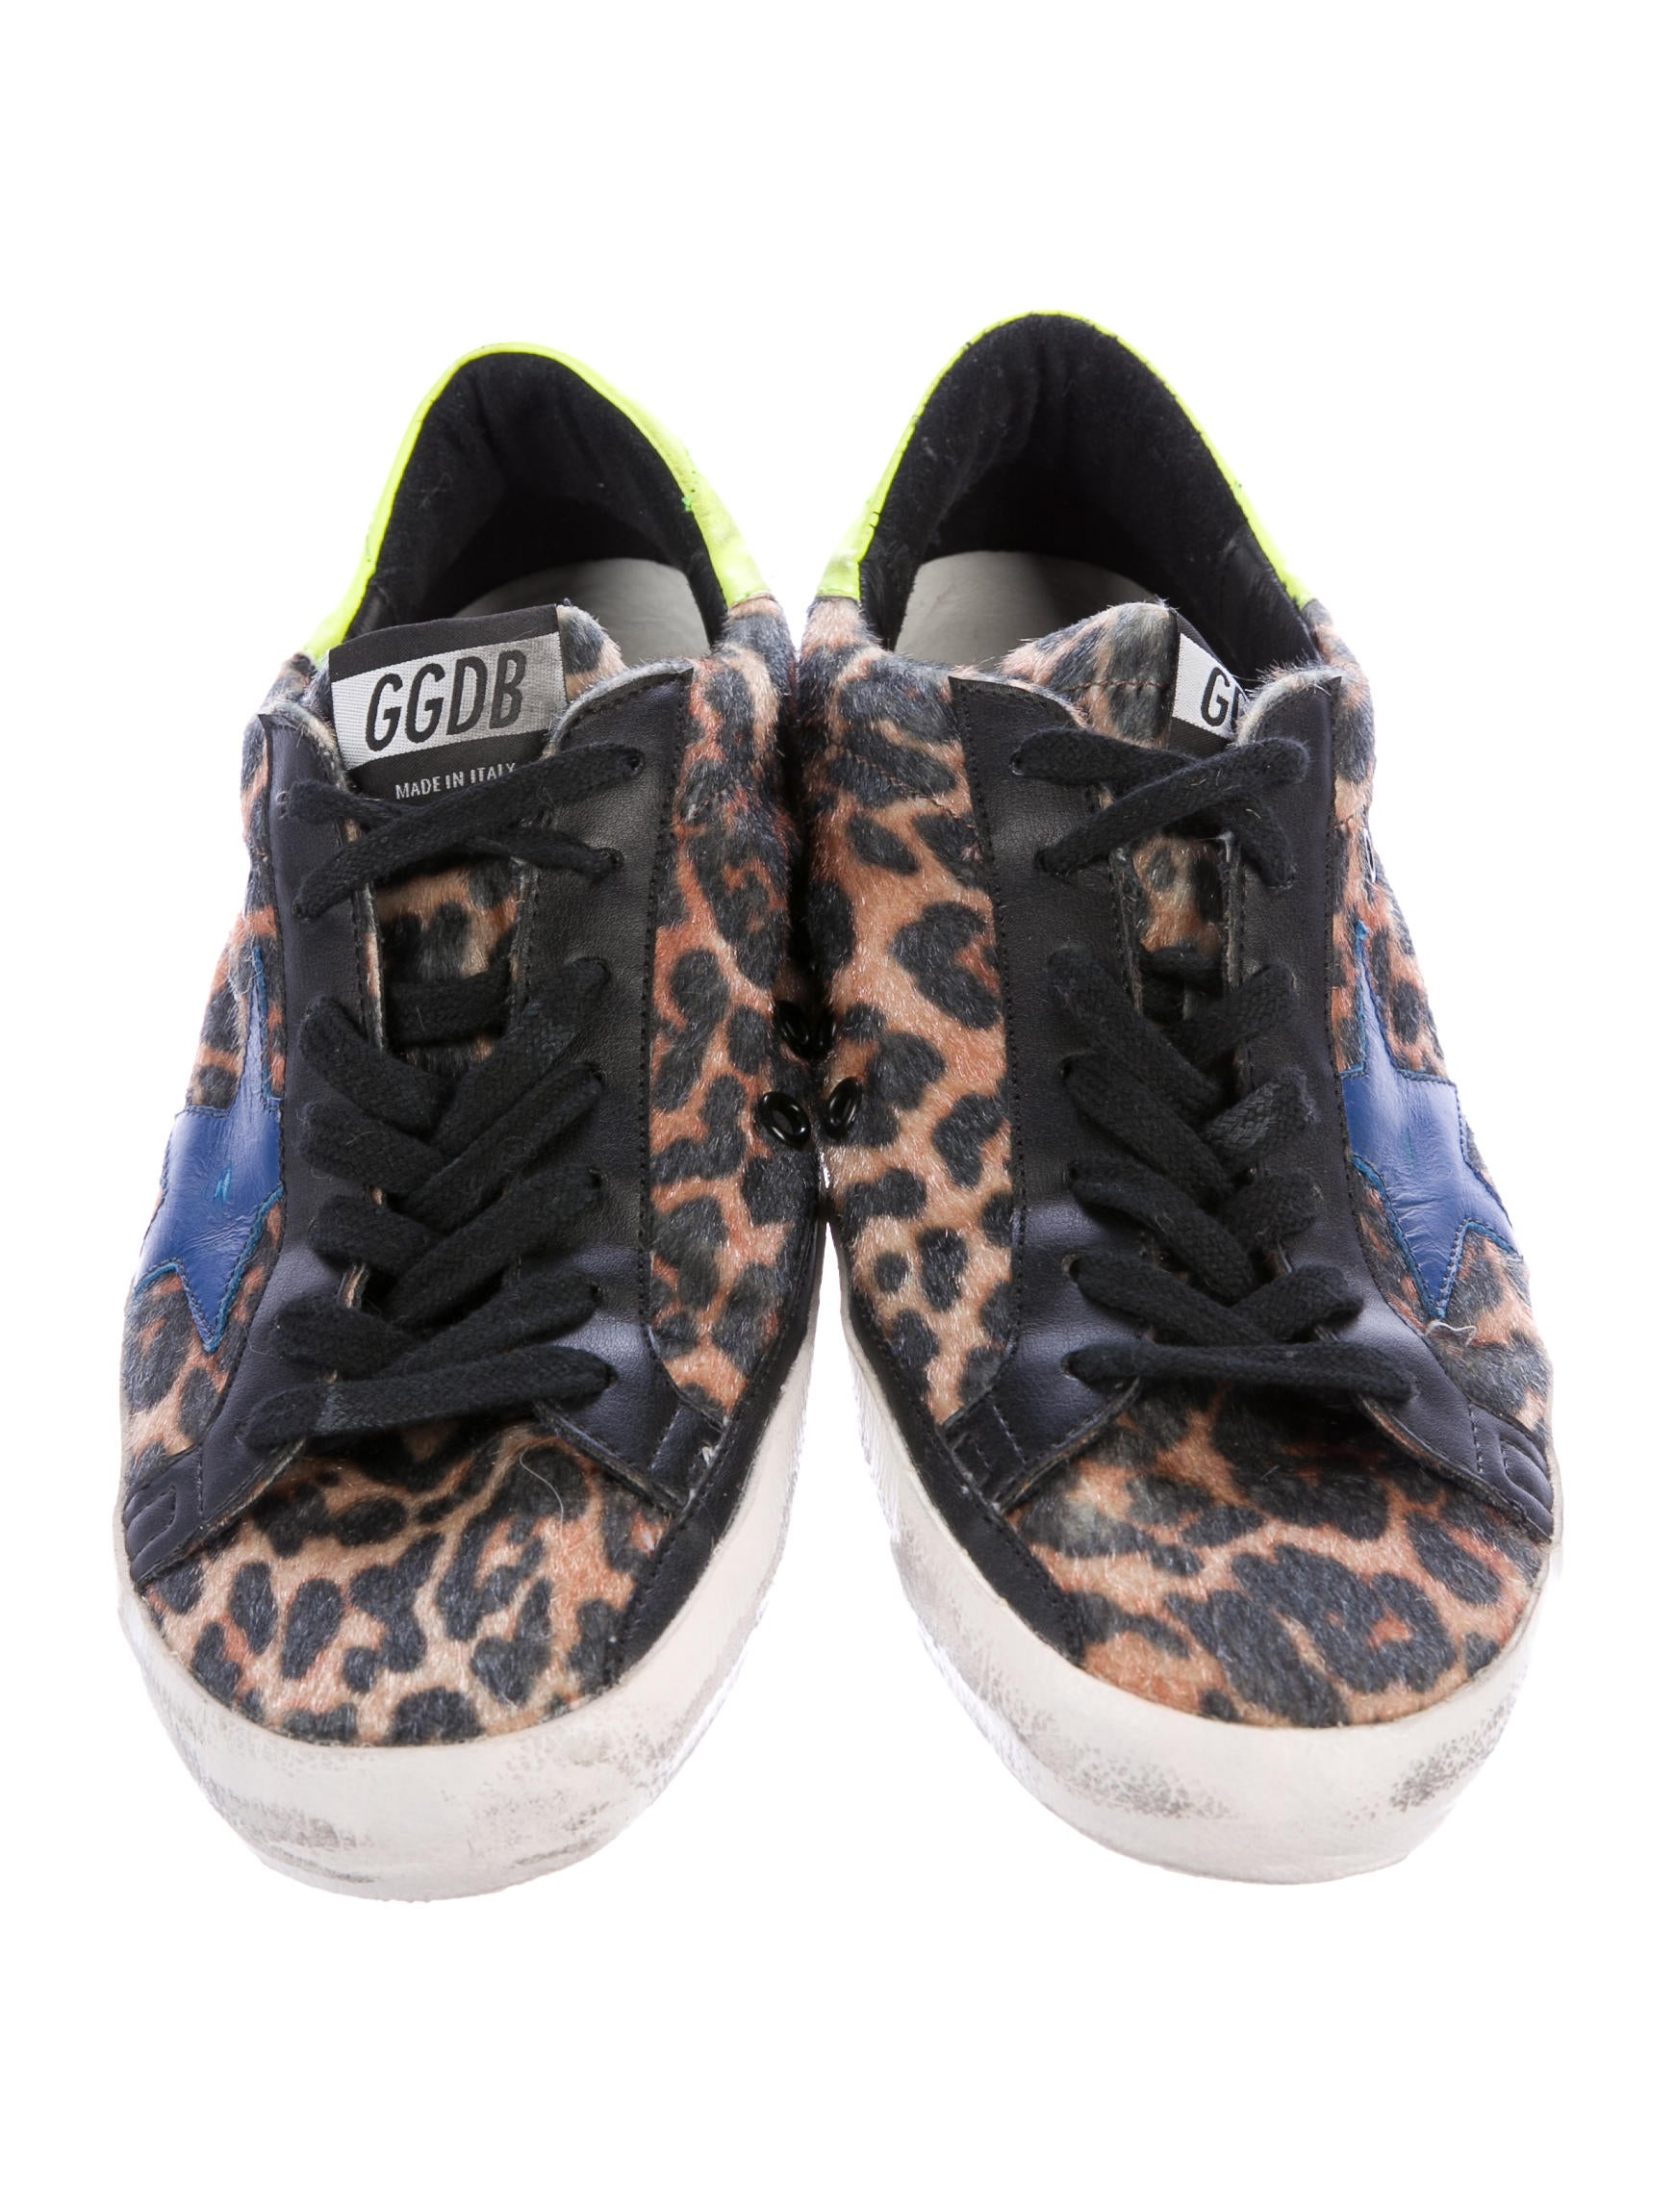 golden goose superstar leopard print sneakers shoes wg525117 the realreal. Black Bedroom Furniture Sets. Home Design Ideas